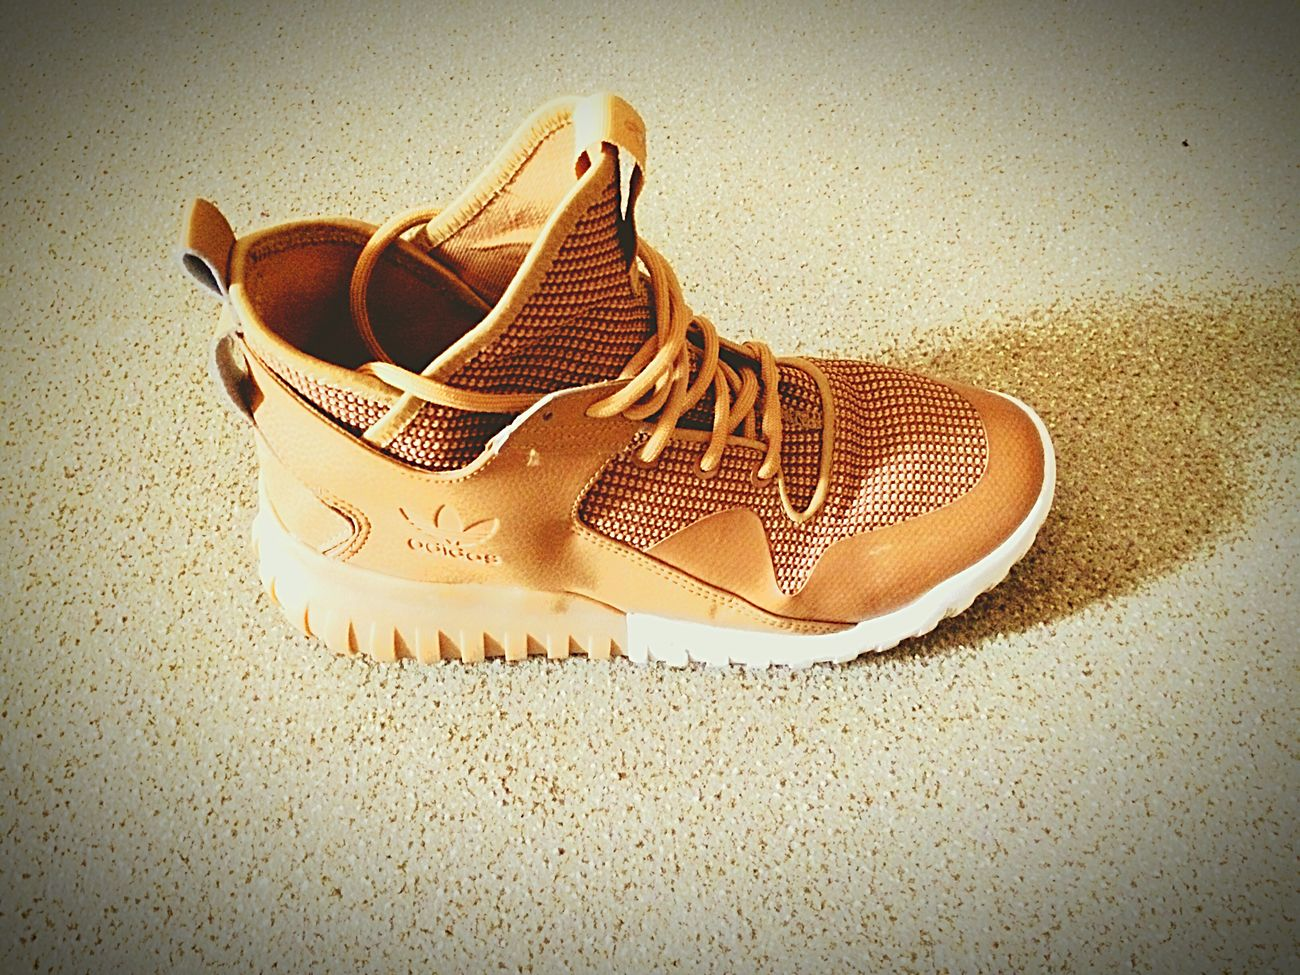 Tubular Tubular Tubular Steel Adidas Adidas Tubular Shoe Fashion Pair Close-up Flat Shoe Menswear No People Things That Go Together Indoors  Day Walk Schuhe  For Walking